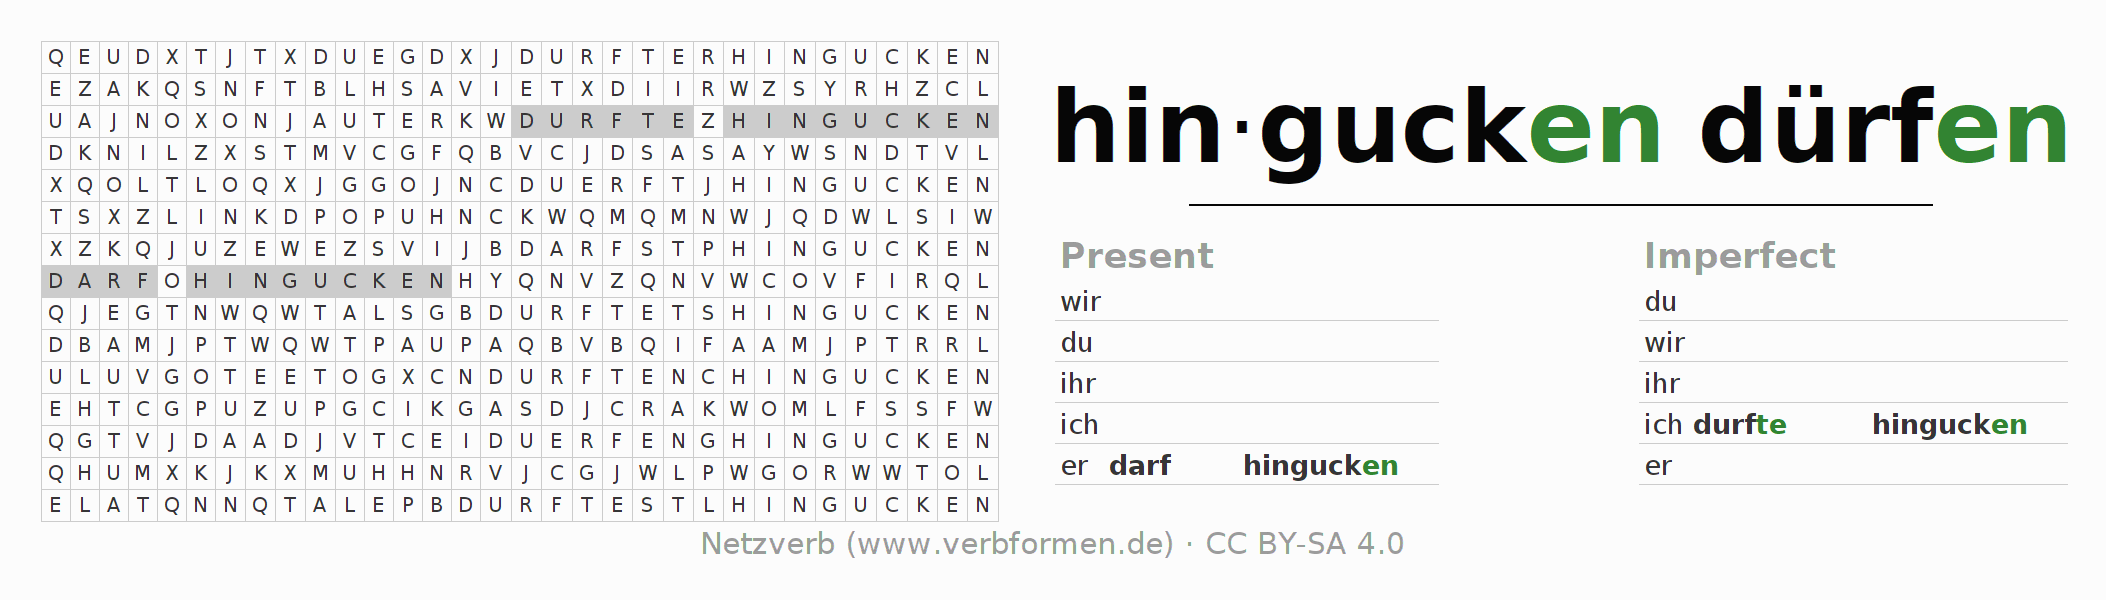 Word search puzzle for the conjugation of the verb darf hingucken